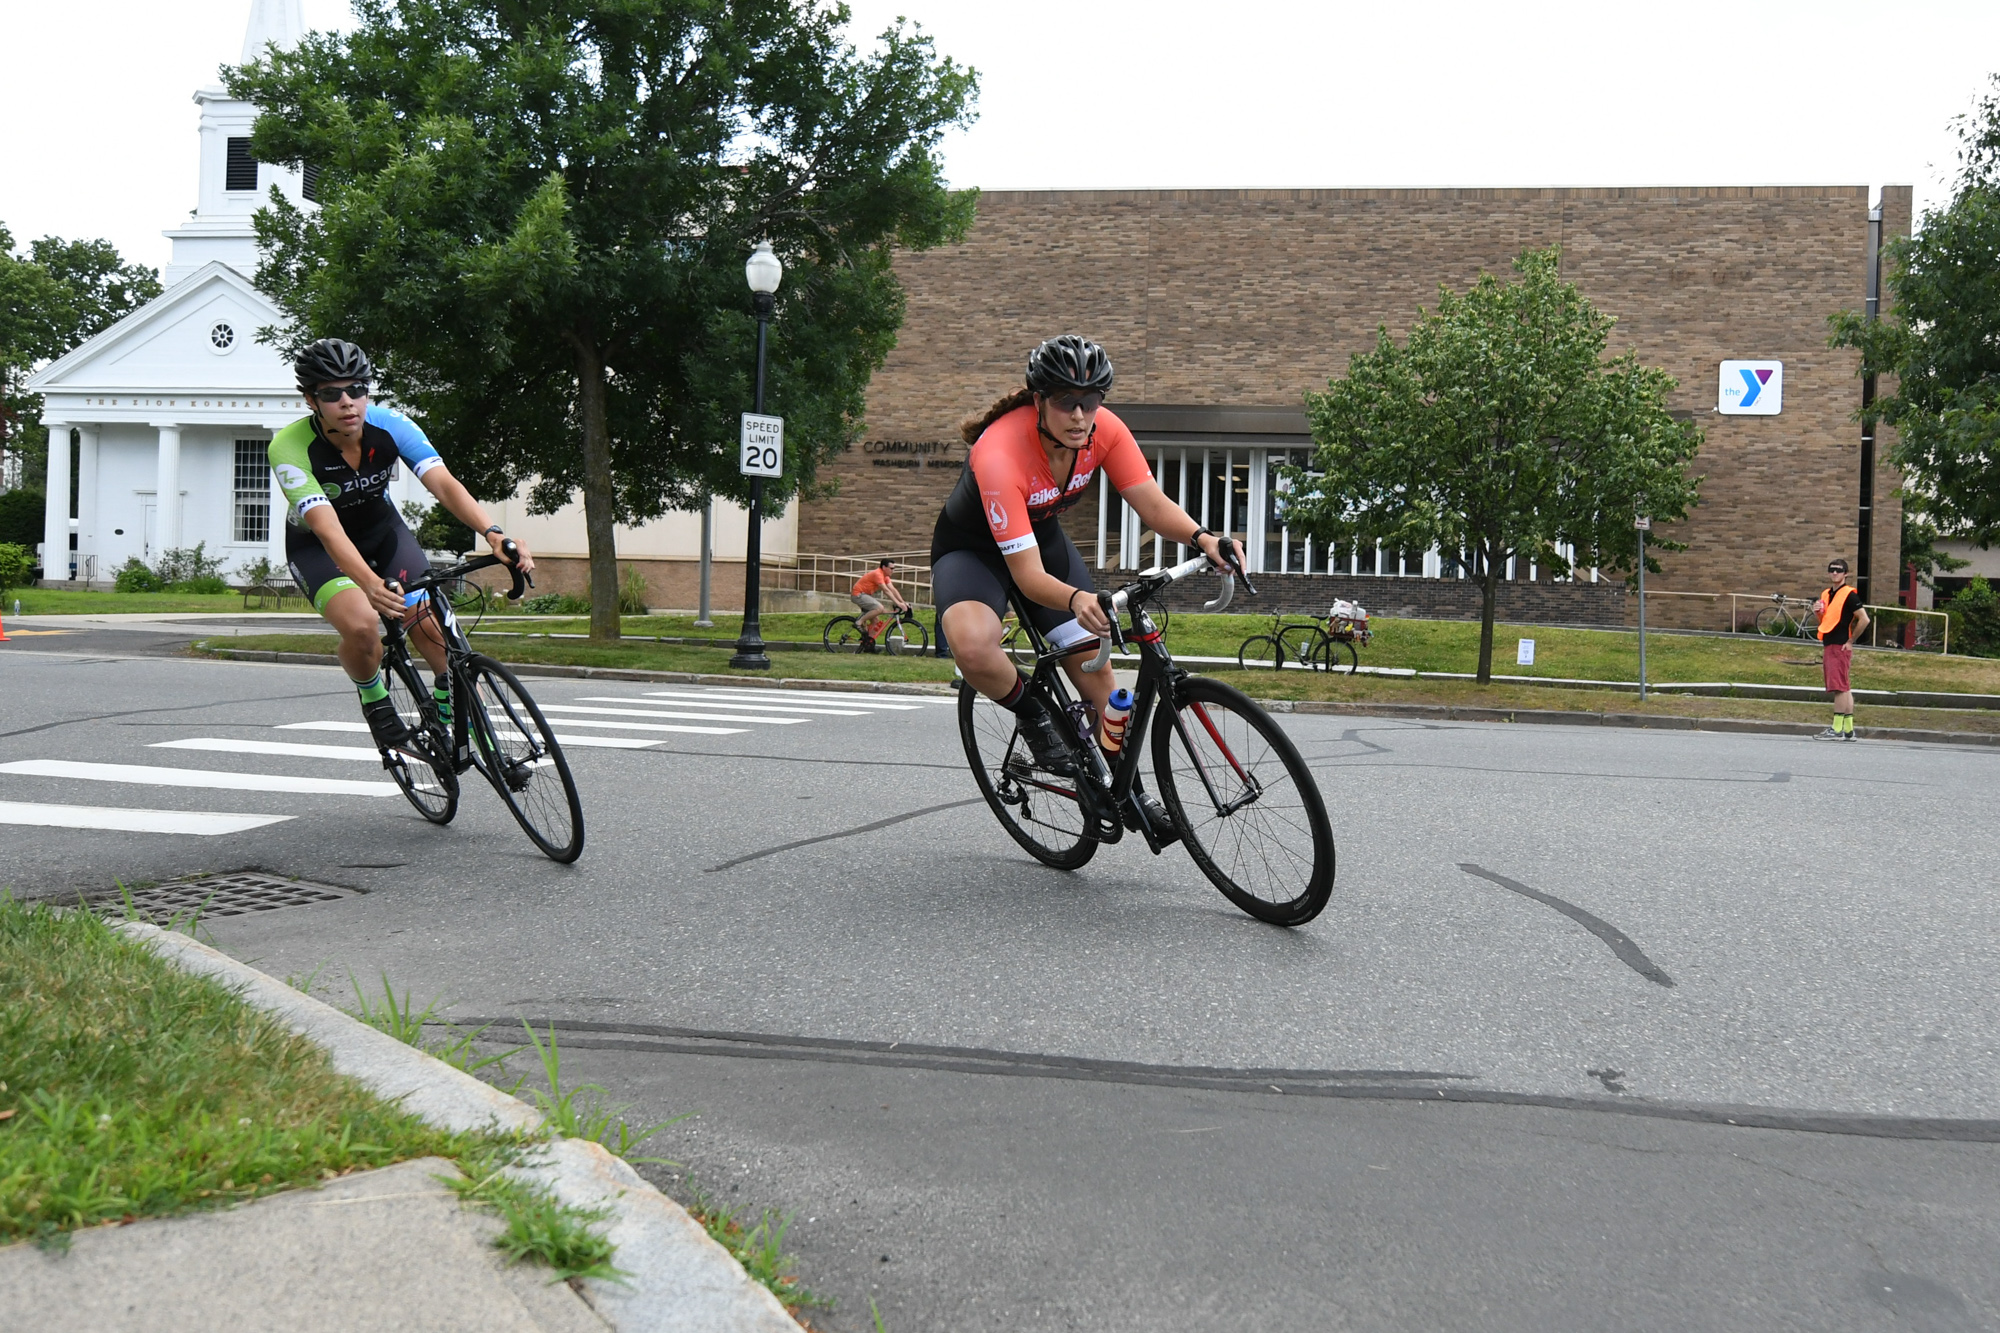 Green Line Velo's Katie Mills took the win after a strong showing all race